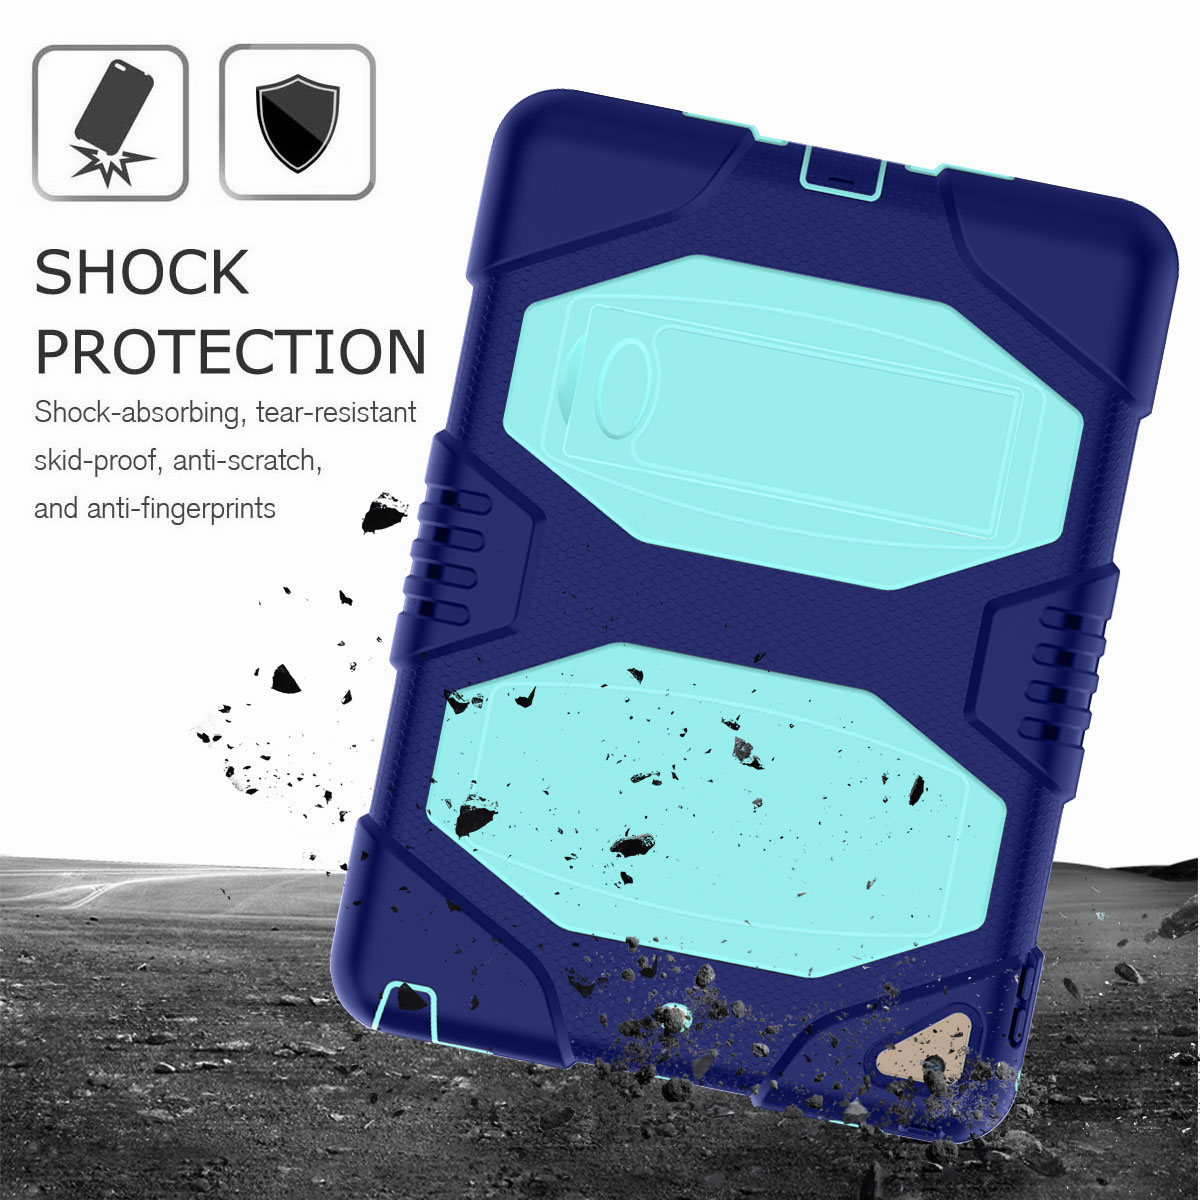 Hybrid-Rubber-Heavy-Duty-Shockproof-Case-Cover-For-iPad-9-7-6th-Generation-2018 thumbnail 90